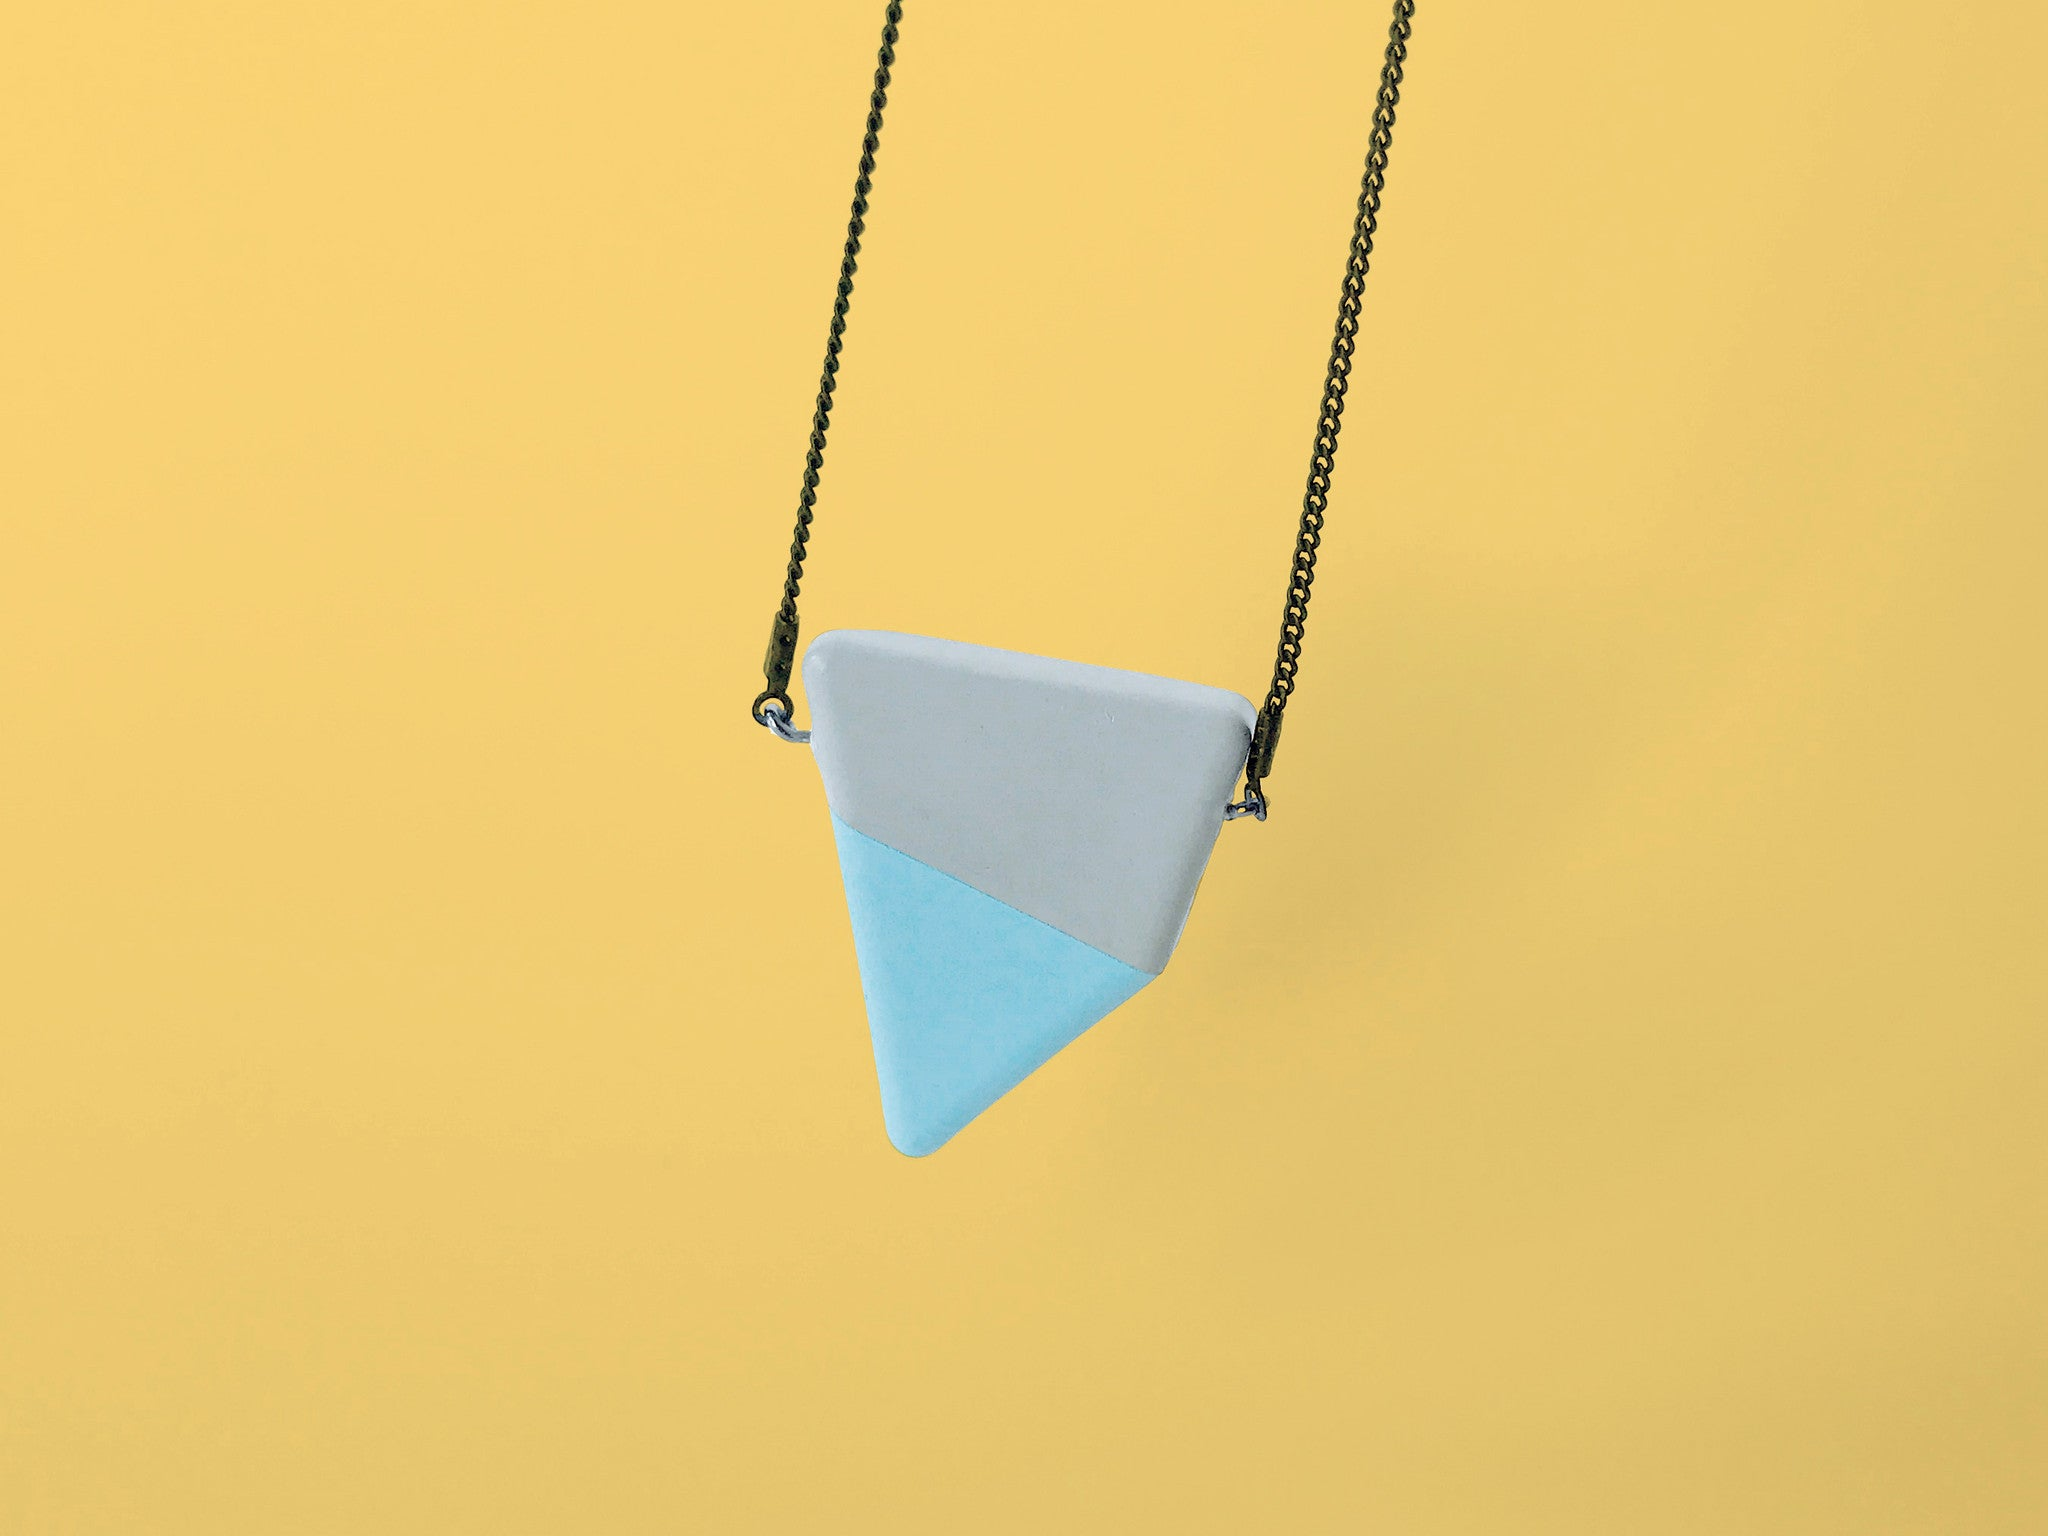 Concrete Necklace - Kite